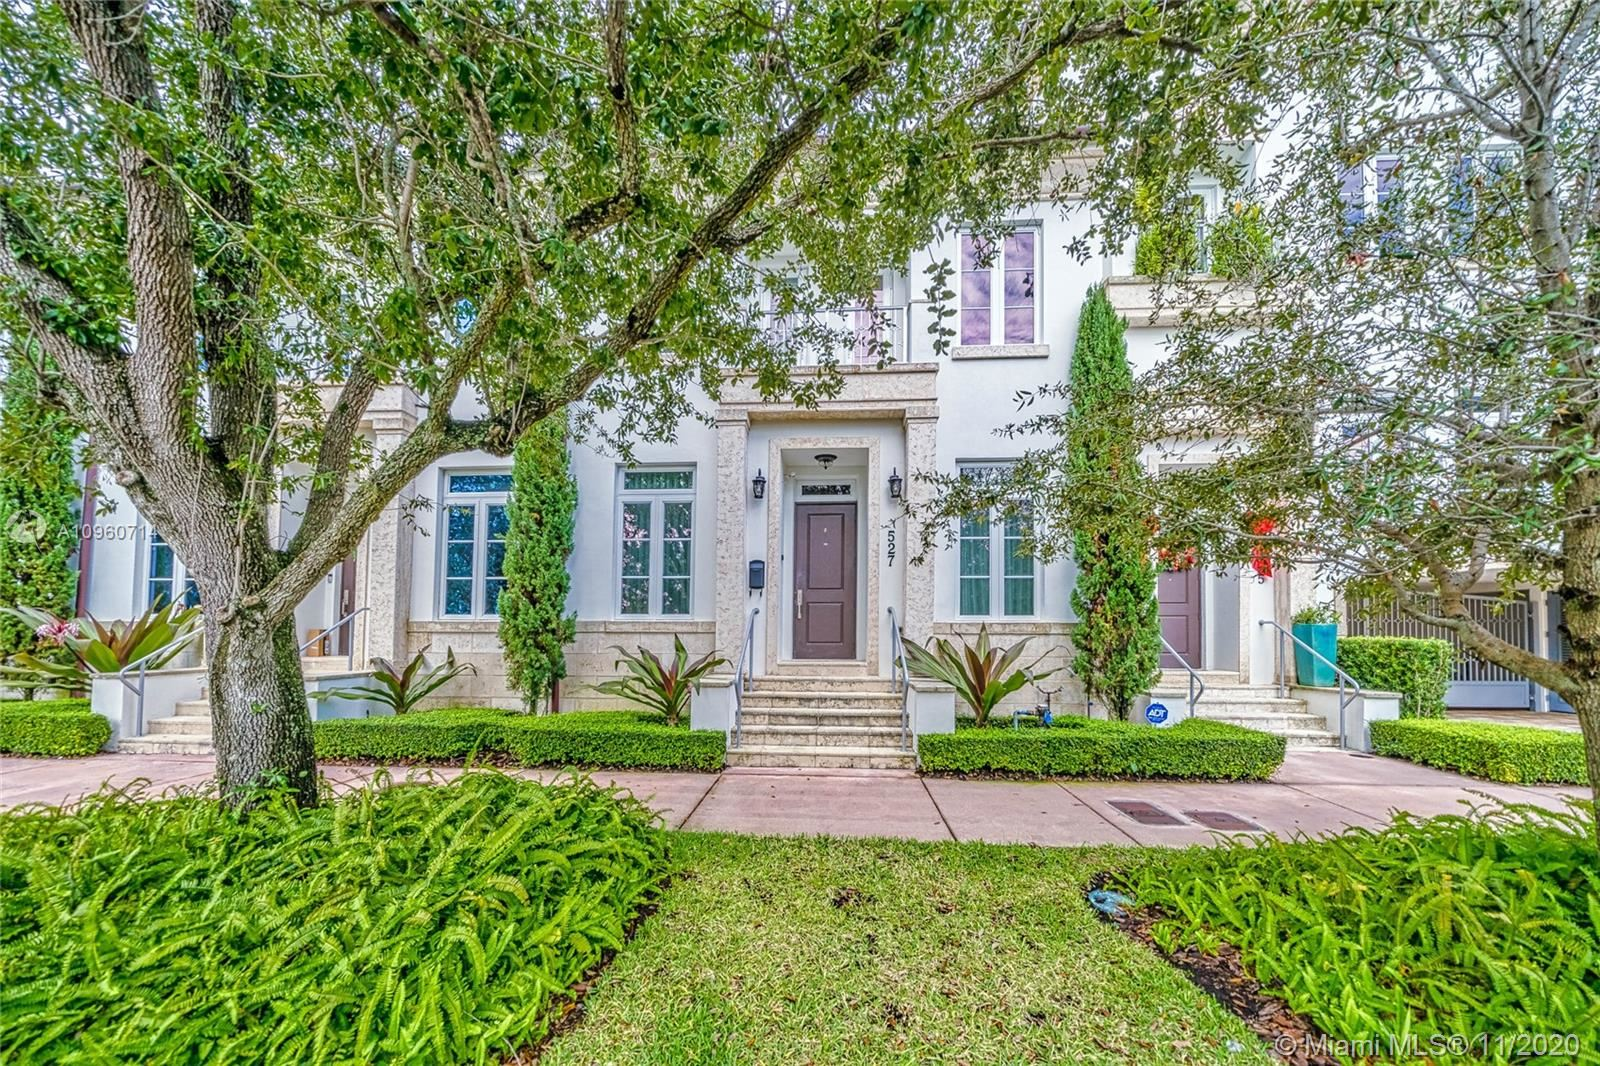 Photo of 527 Anastasia Ave, Coral Gables, FL 33134 (MLS # A10960714)